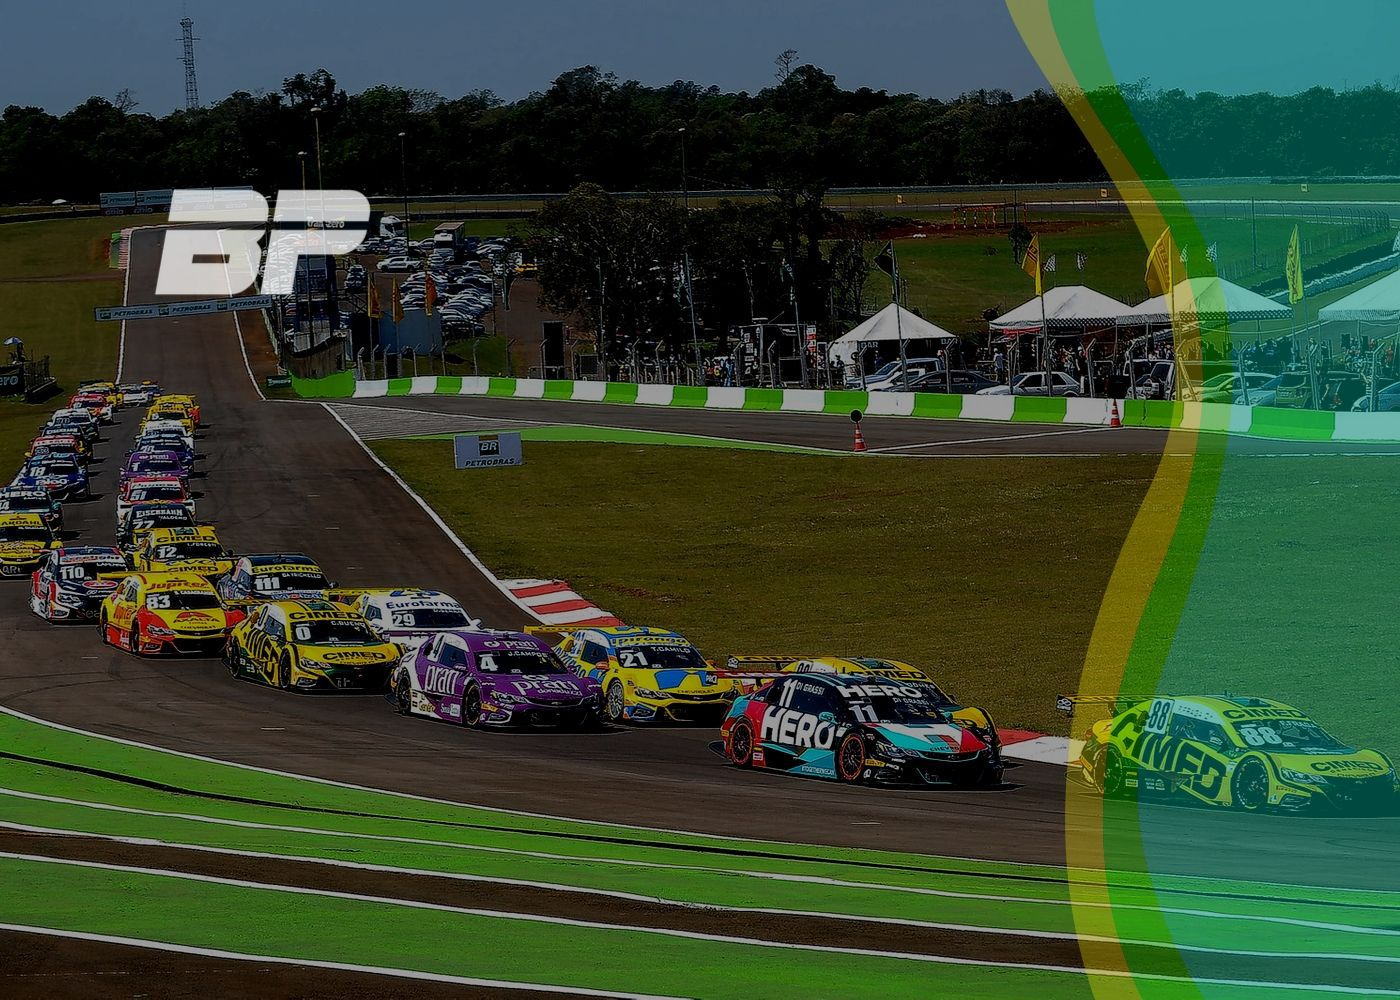 Foto de Preview nona etapa da Stock Car em Cascavel🐍